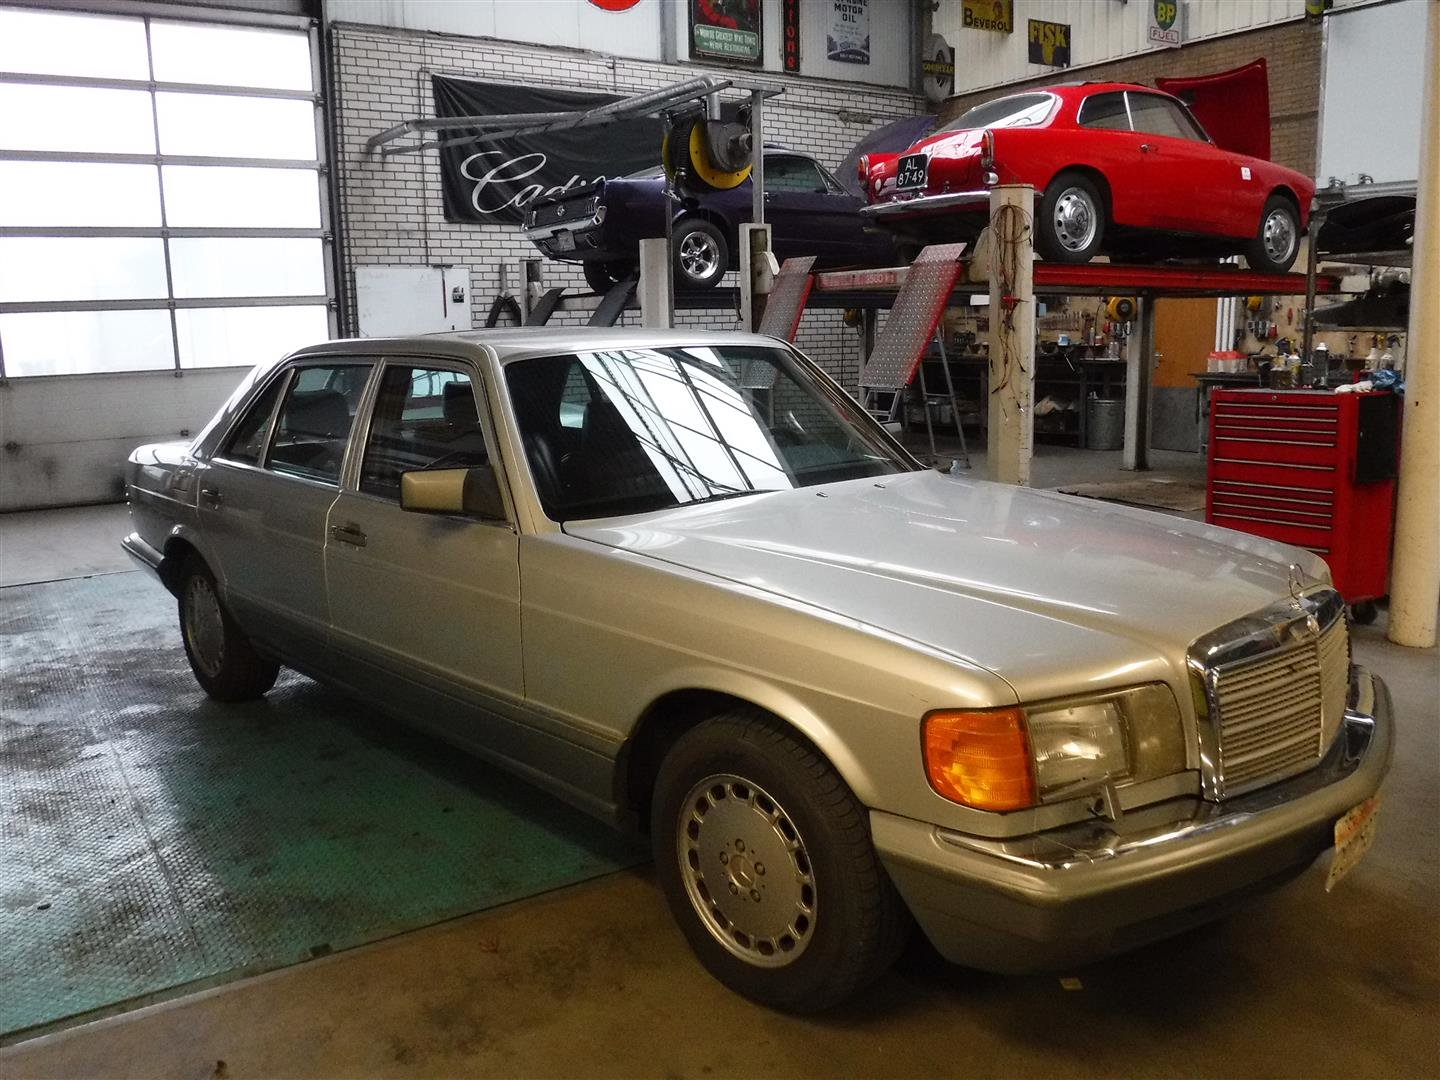 1986 Mercedes Benz 420 SEL '86 For Sale (picture 1 of 6)